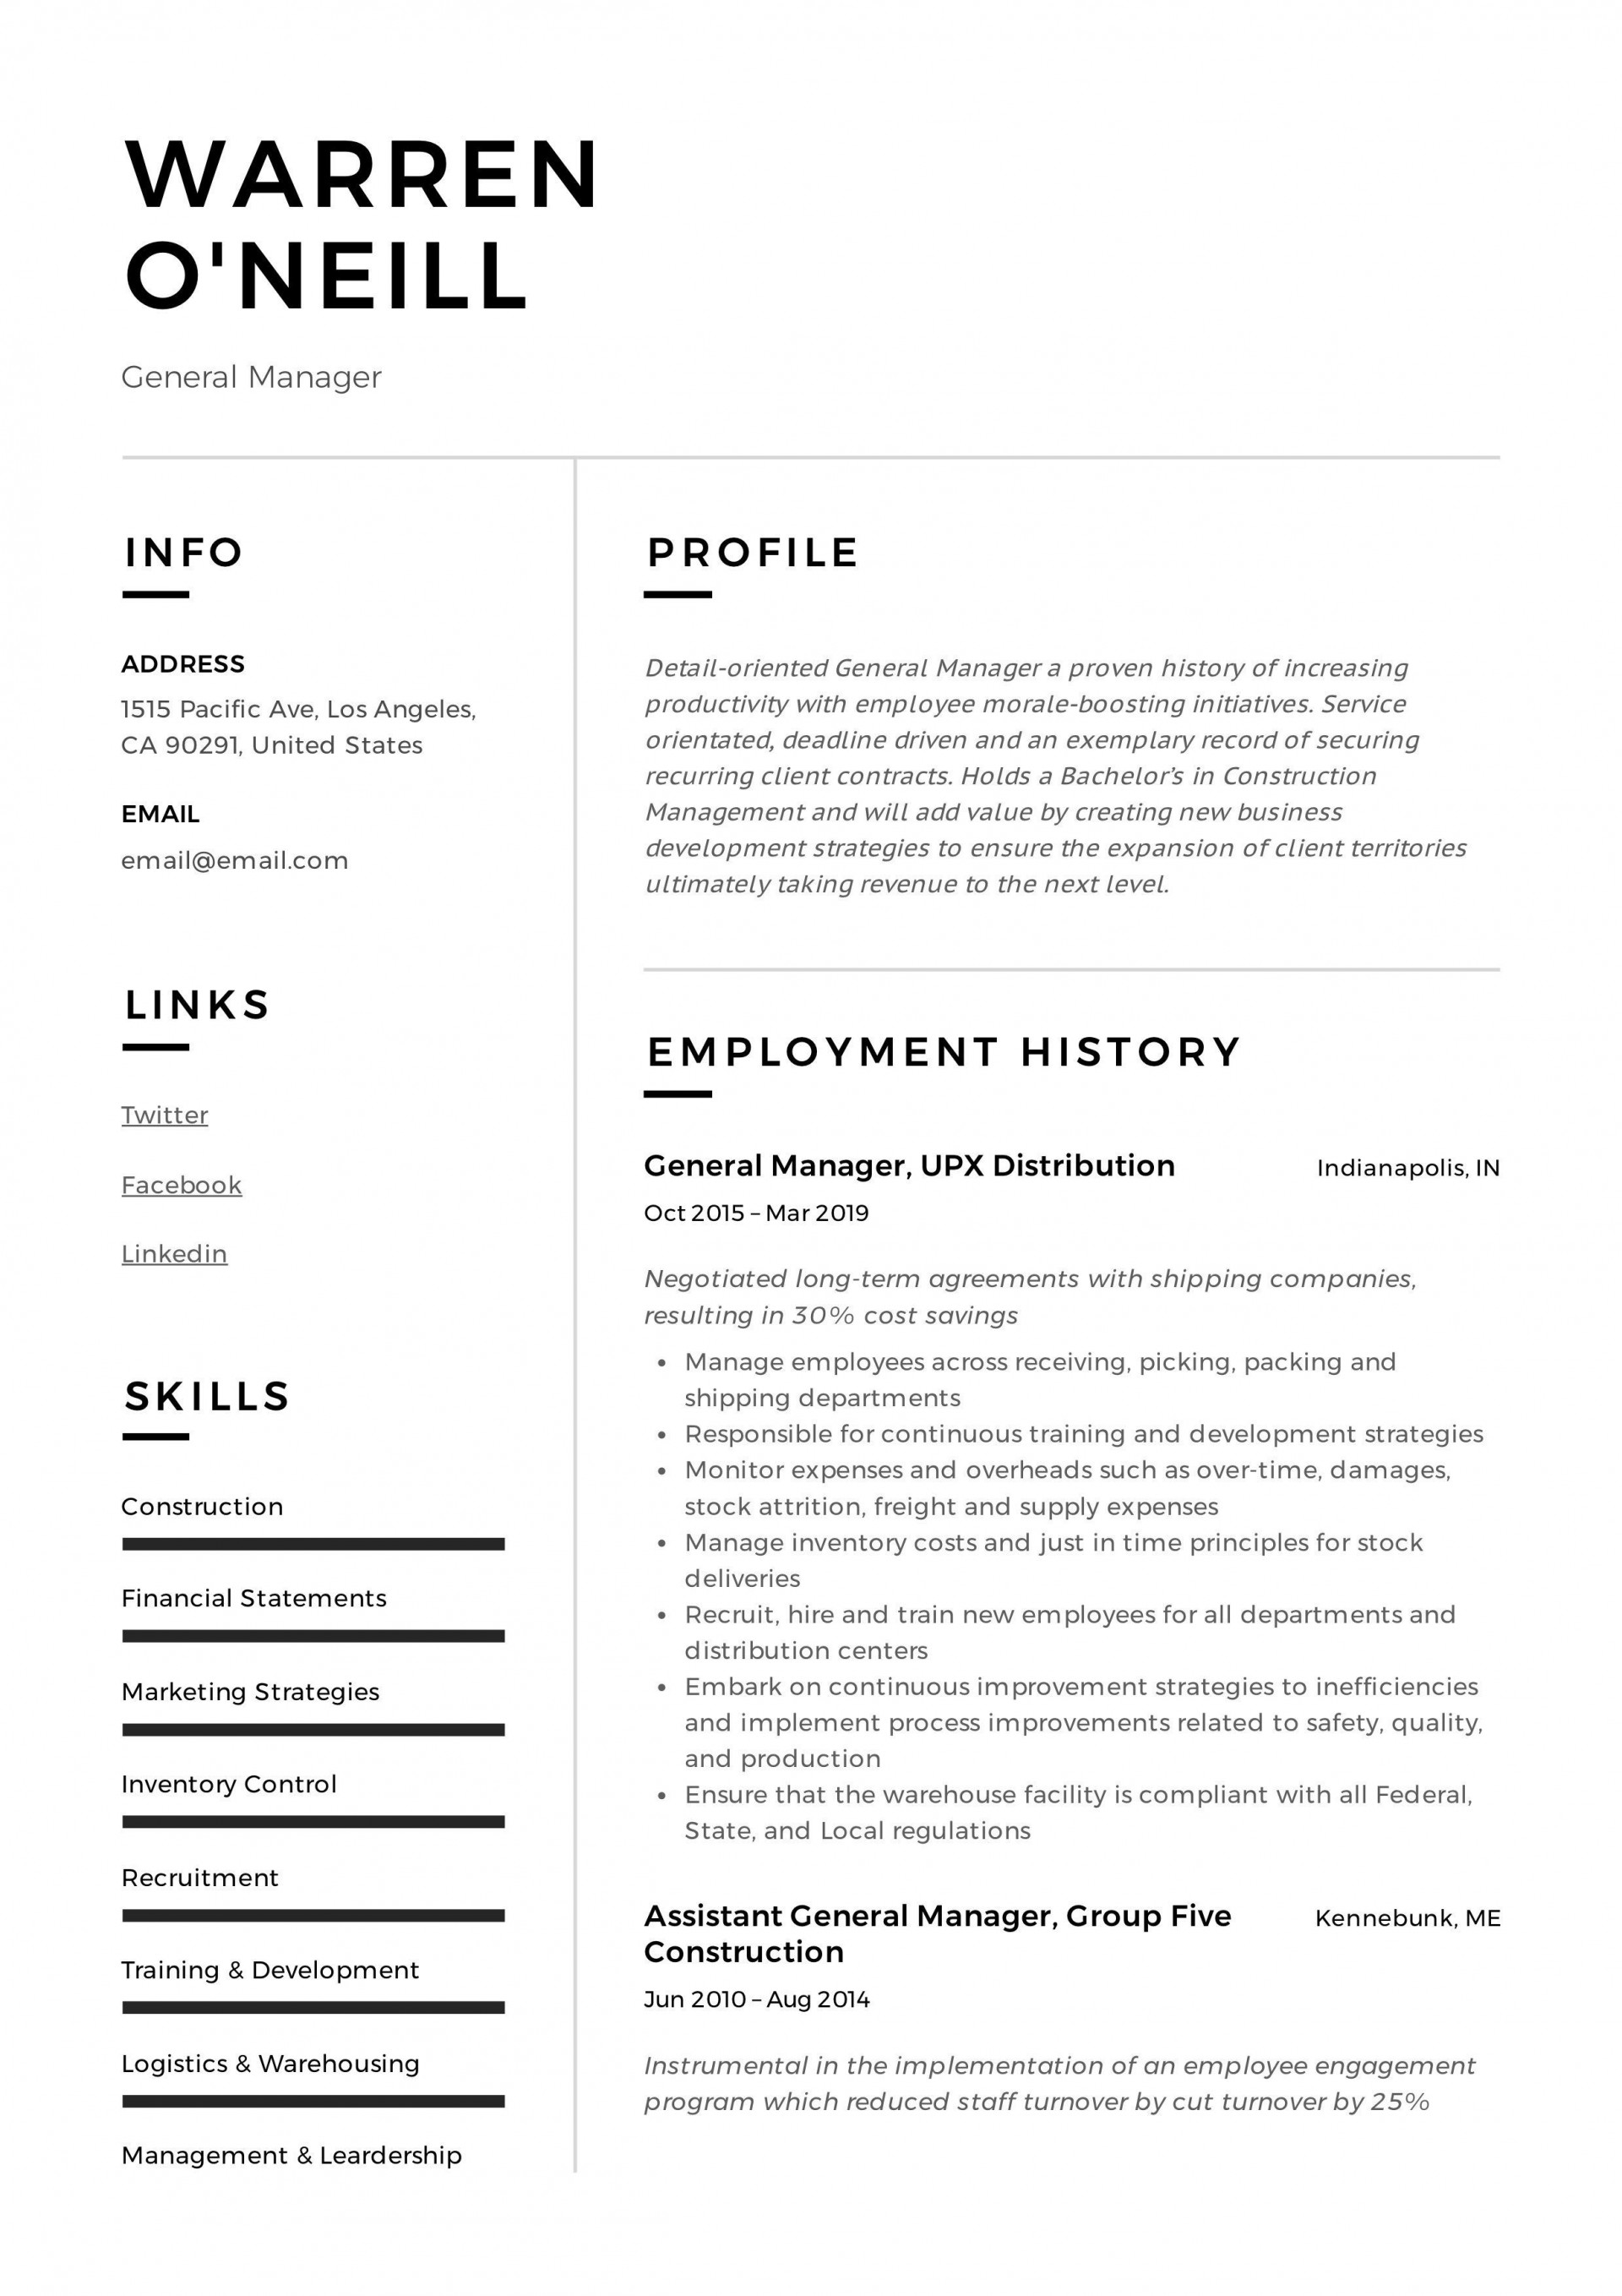 010 Remarkable Resume Example Pdf Free Download High Definition 1920